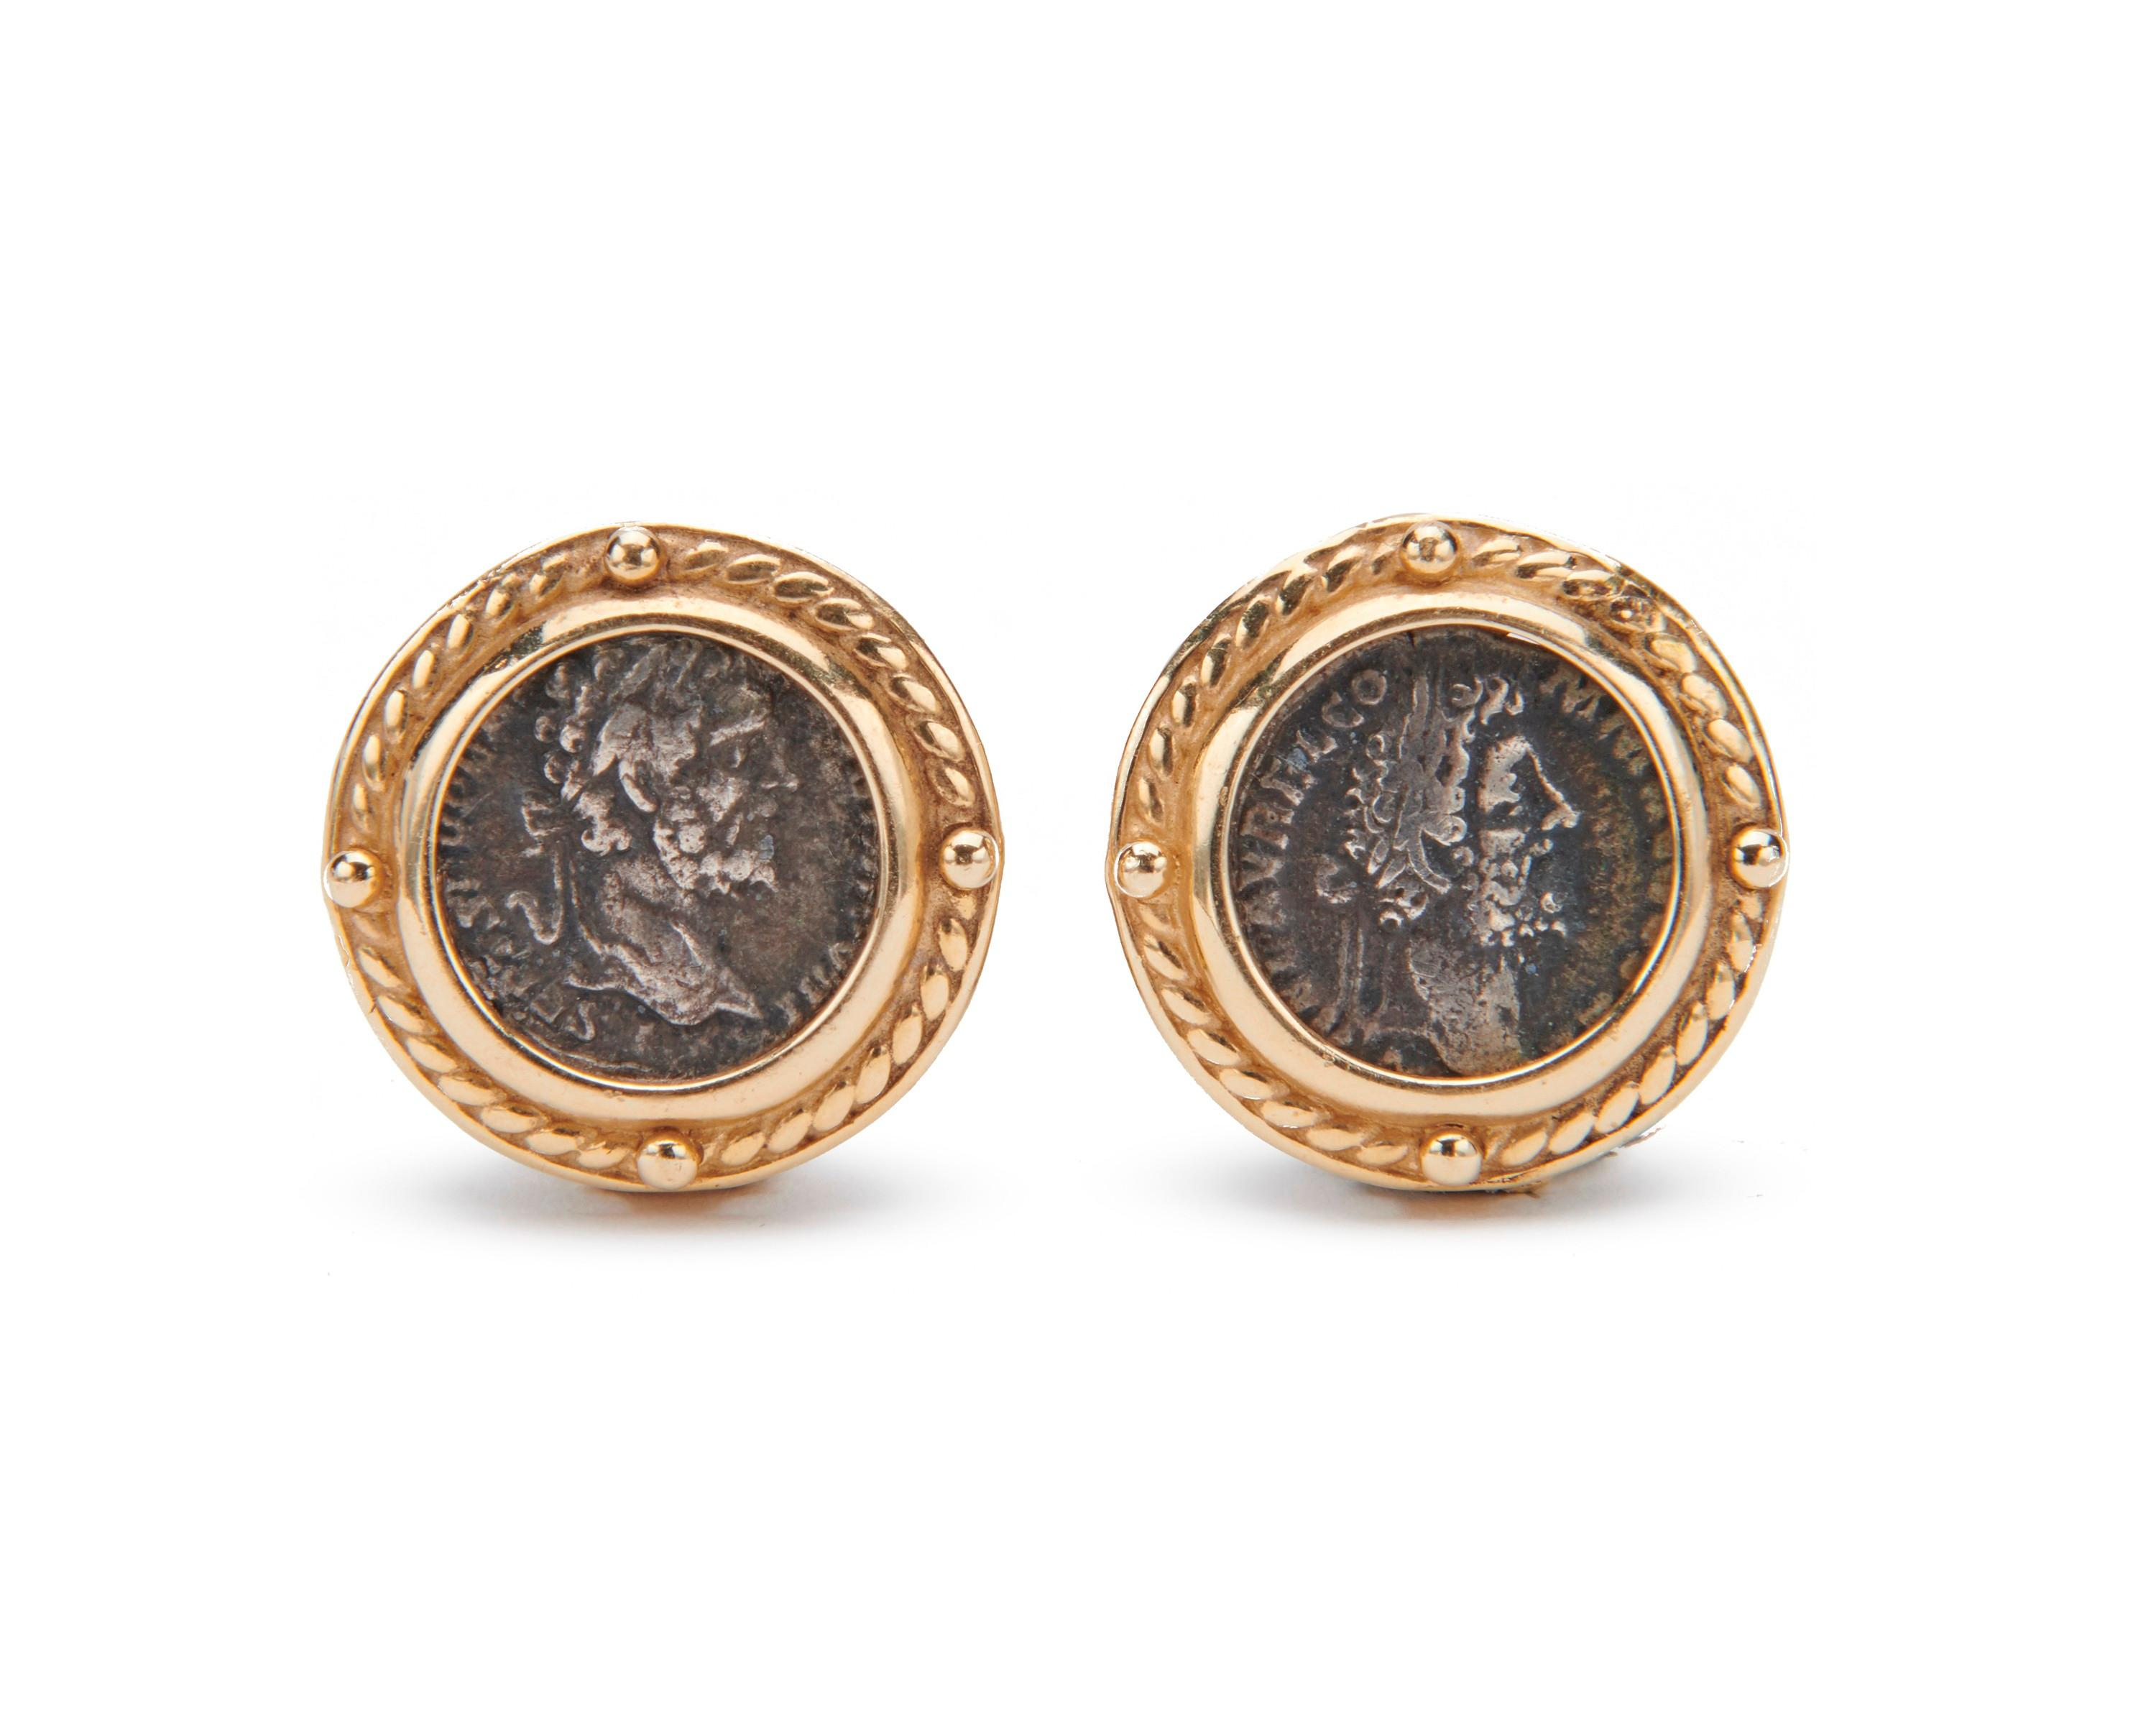 14K Gold and Coin Earrings